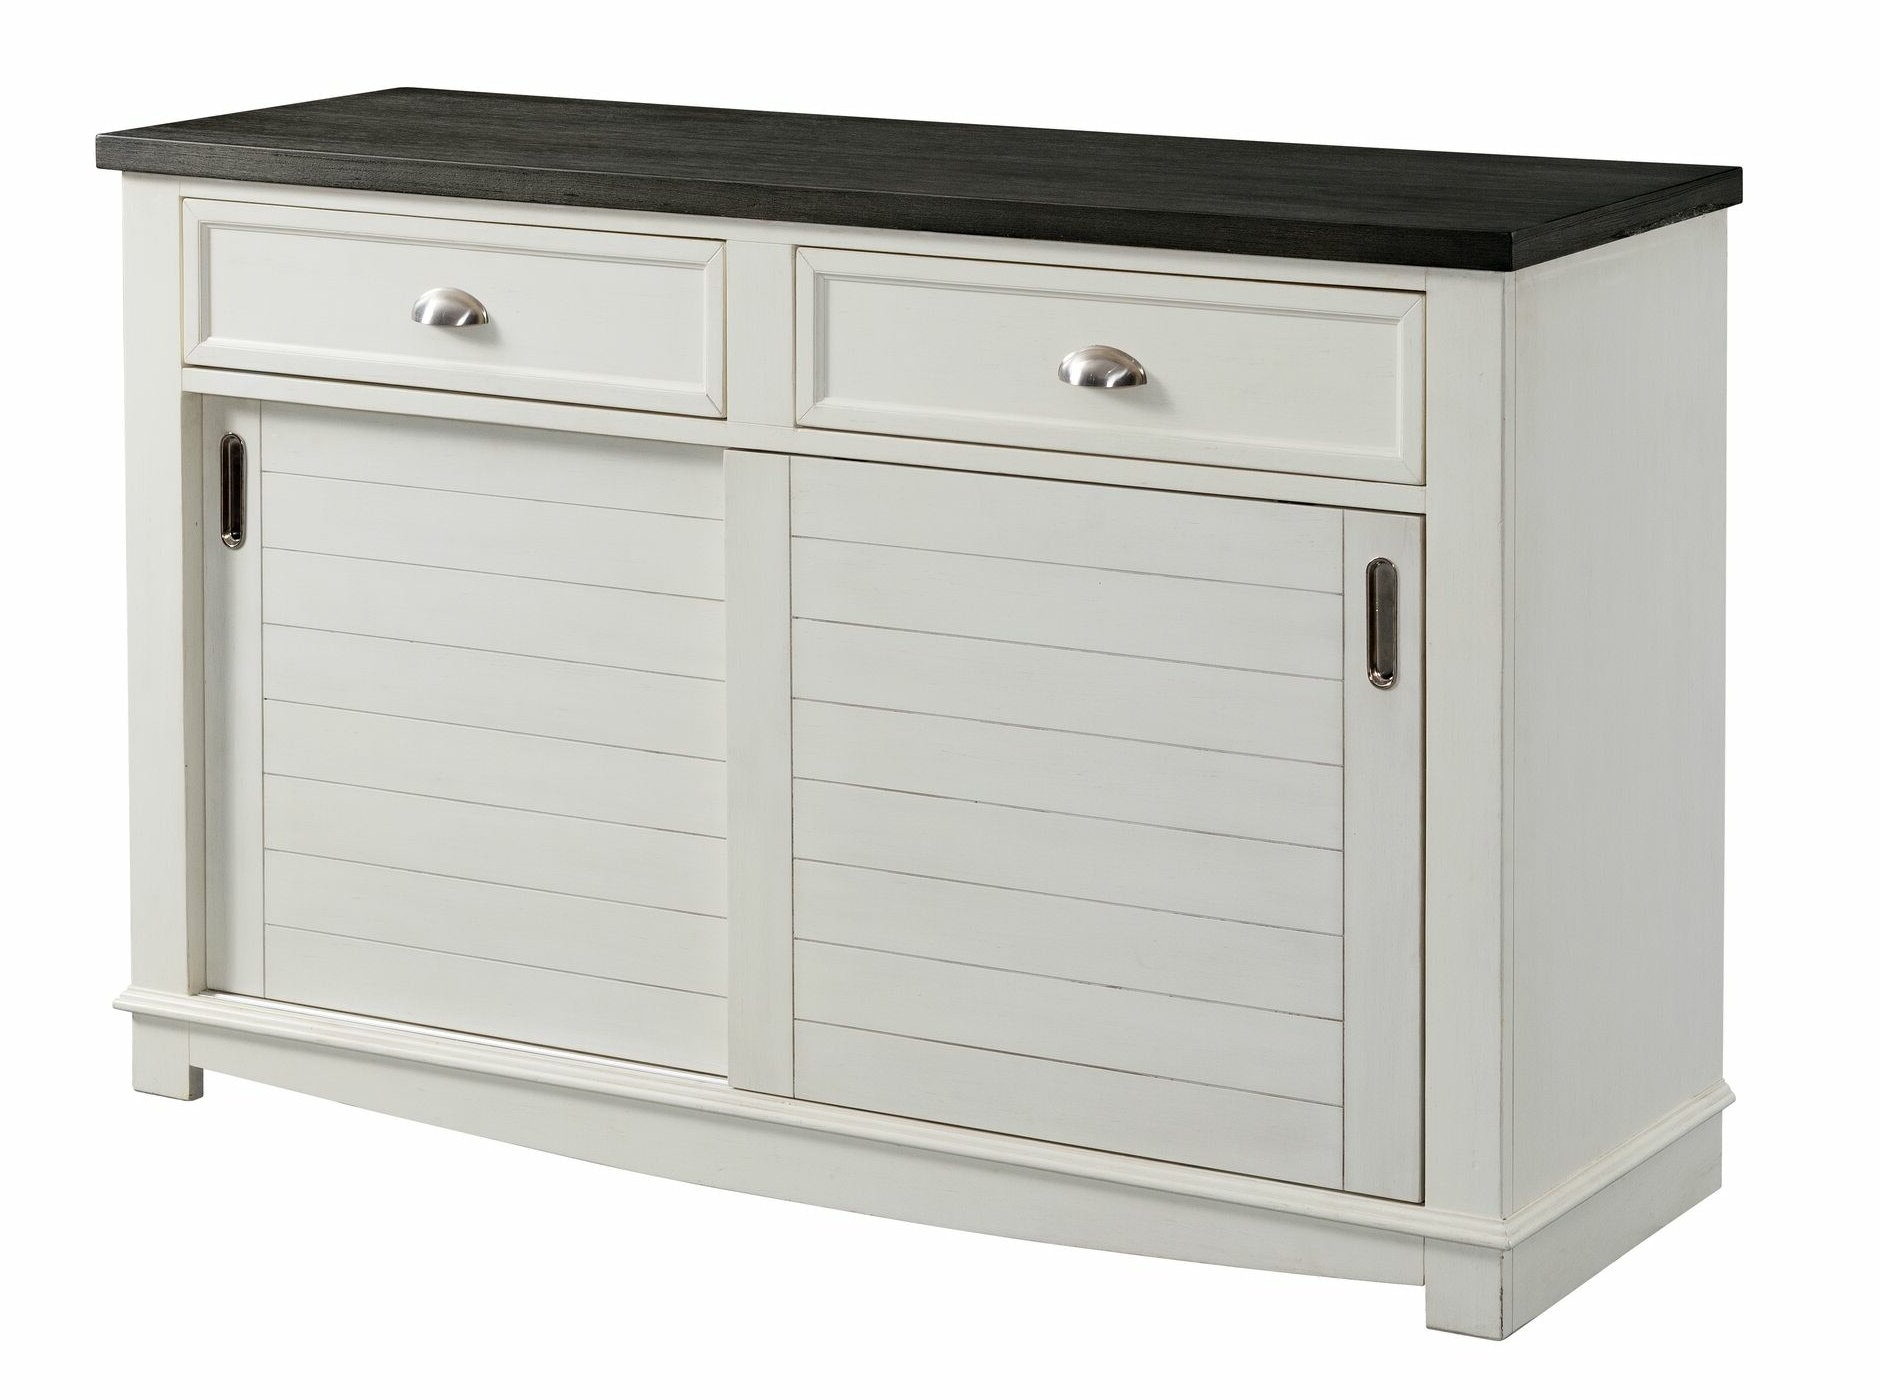 Wayfair.ca For Preferred Cazenovia Charnley Sideboards (Gallery 18 of 20)